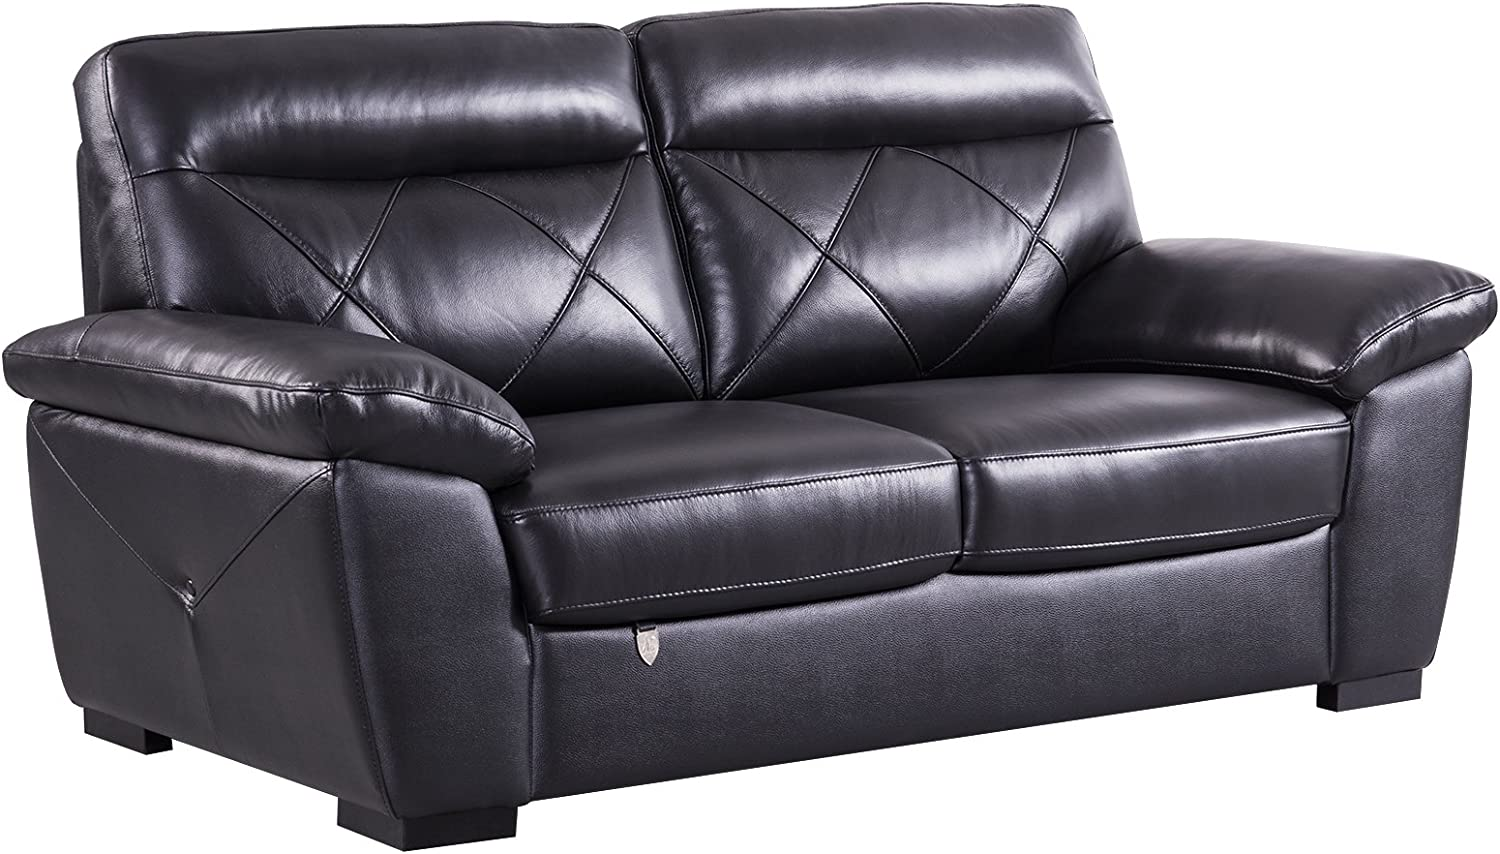 """American Eagle Furniture Modern Contemporary Italian Leather Upholstered Living Room Loveseat, 72"""", Black"""